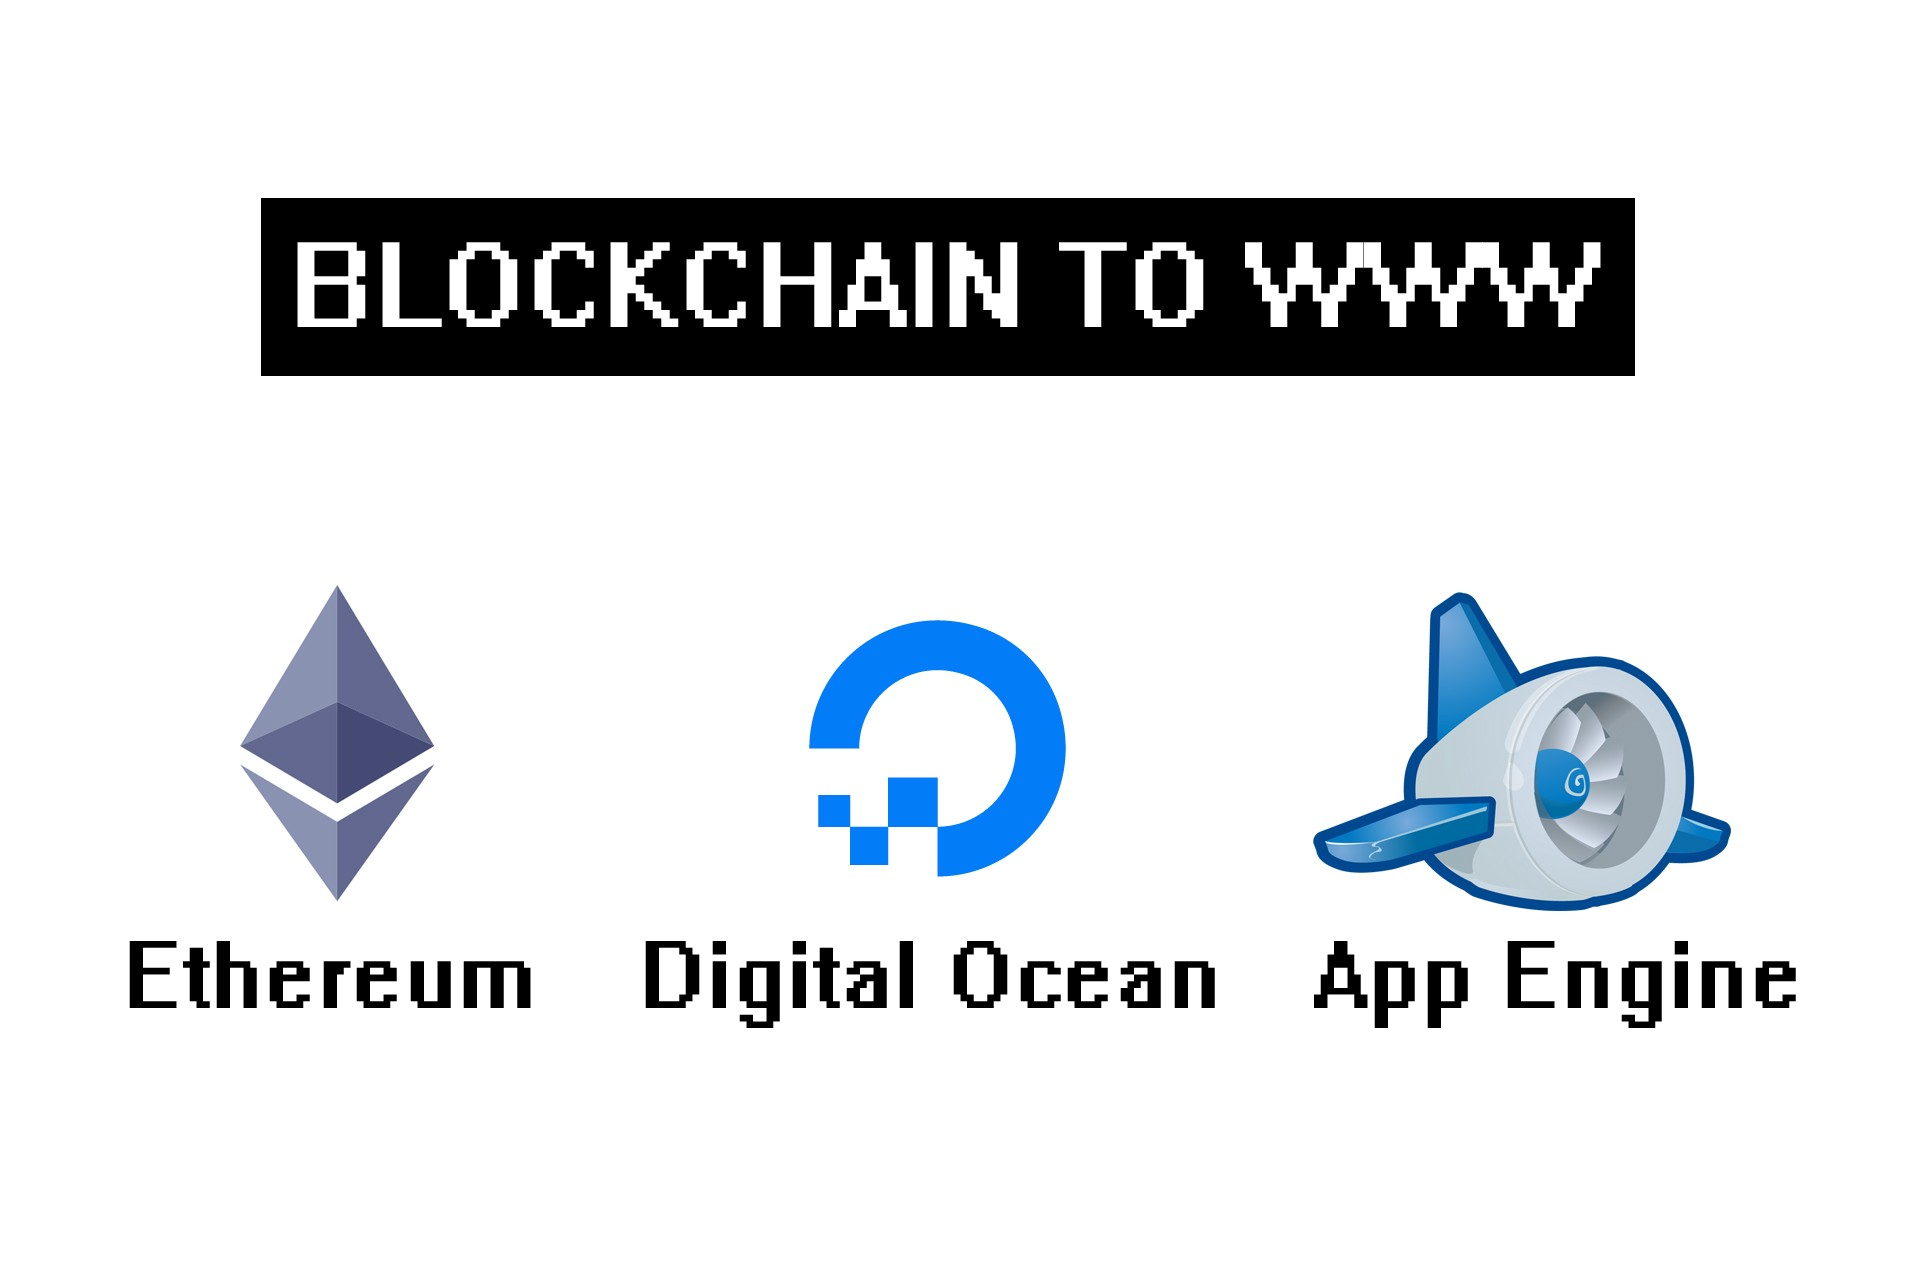 /from-the-blockchain-of-ethereum-through-the-digital-ocean-and-to-the-google-clouds-cf228e5f000f feature image